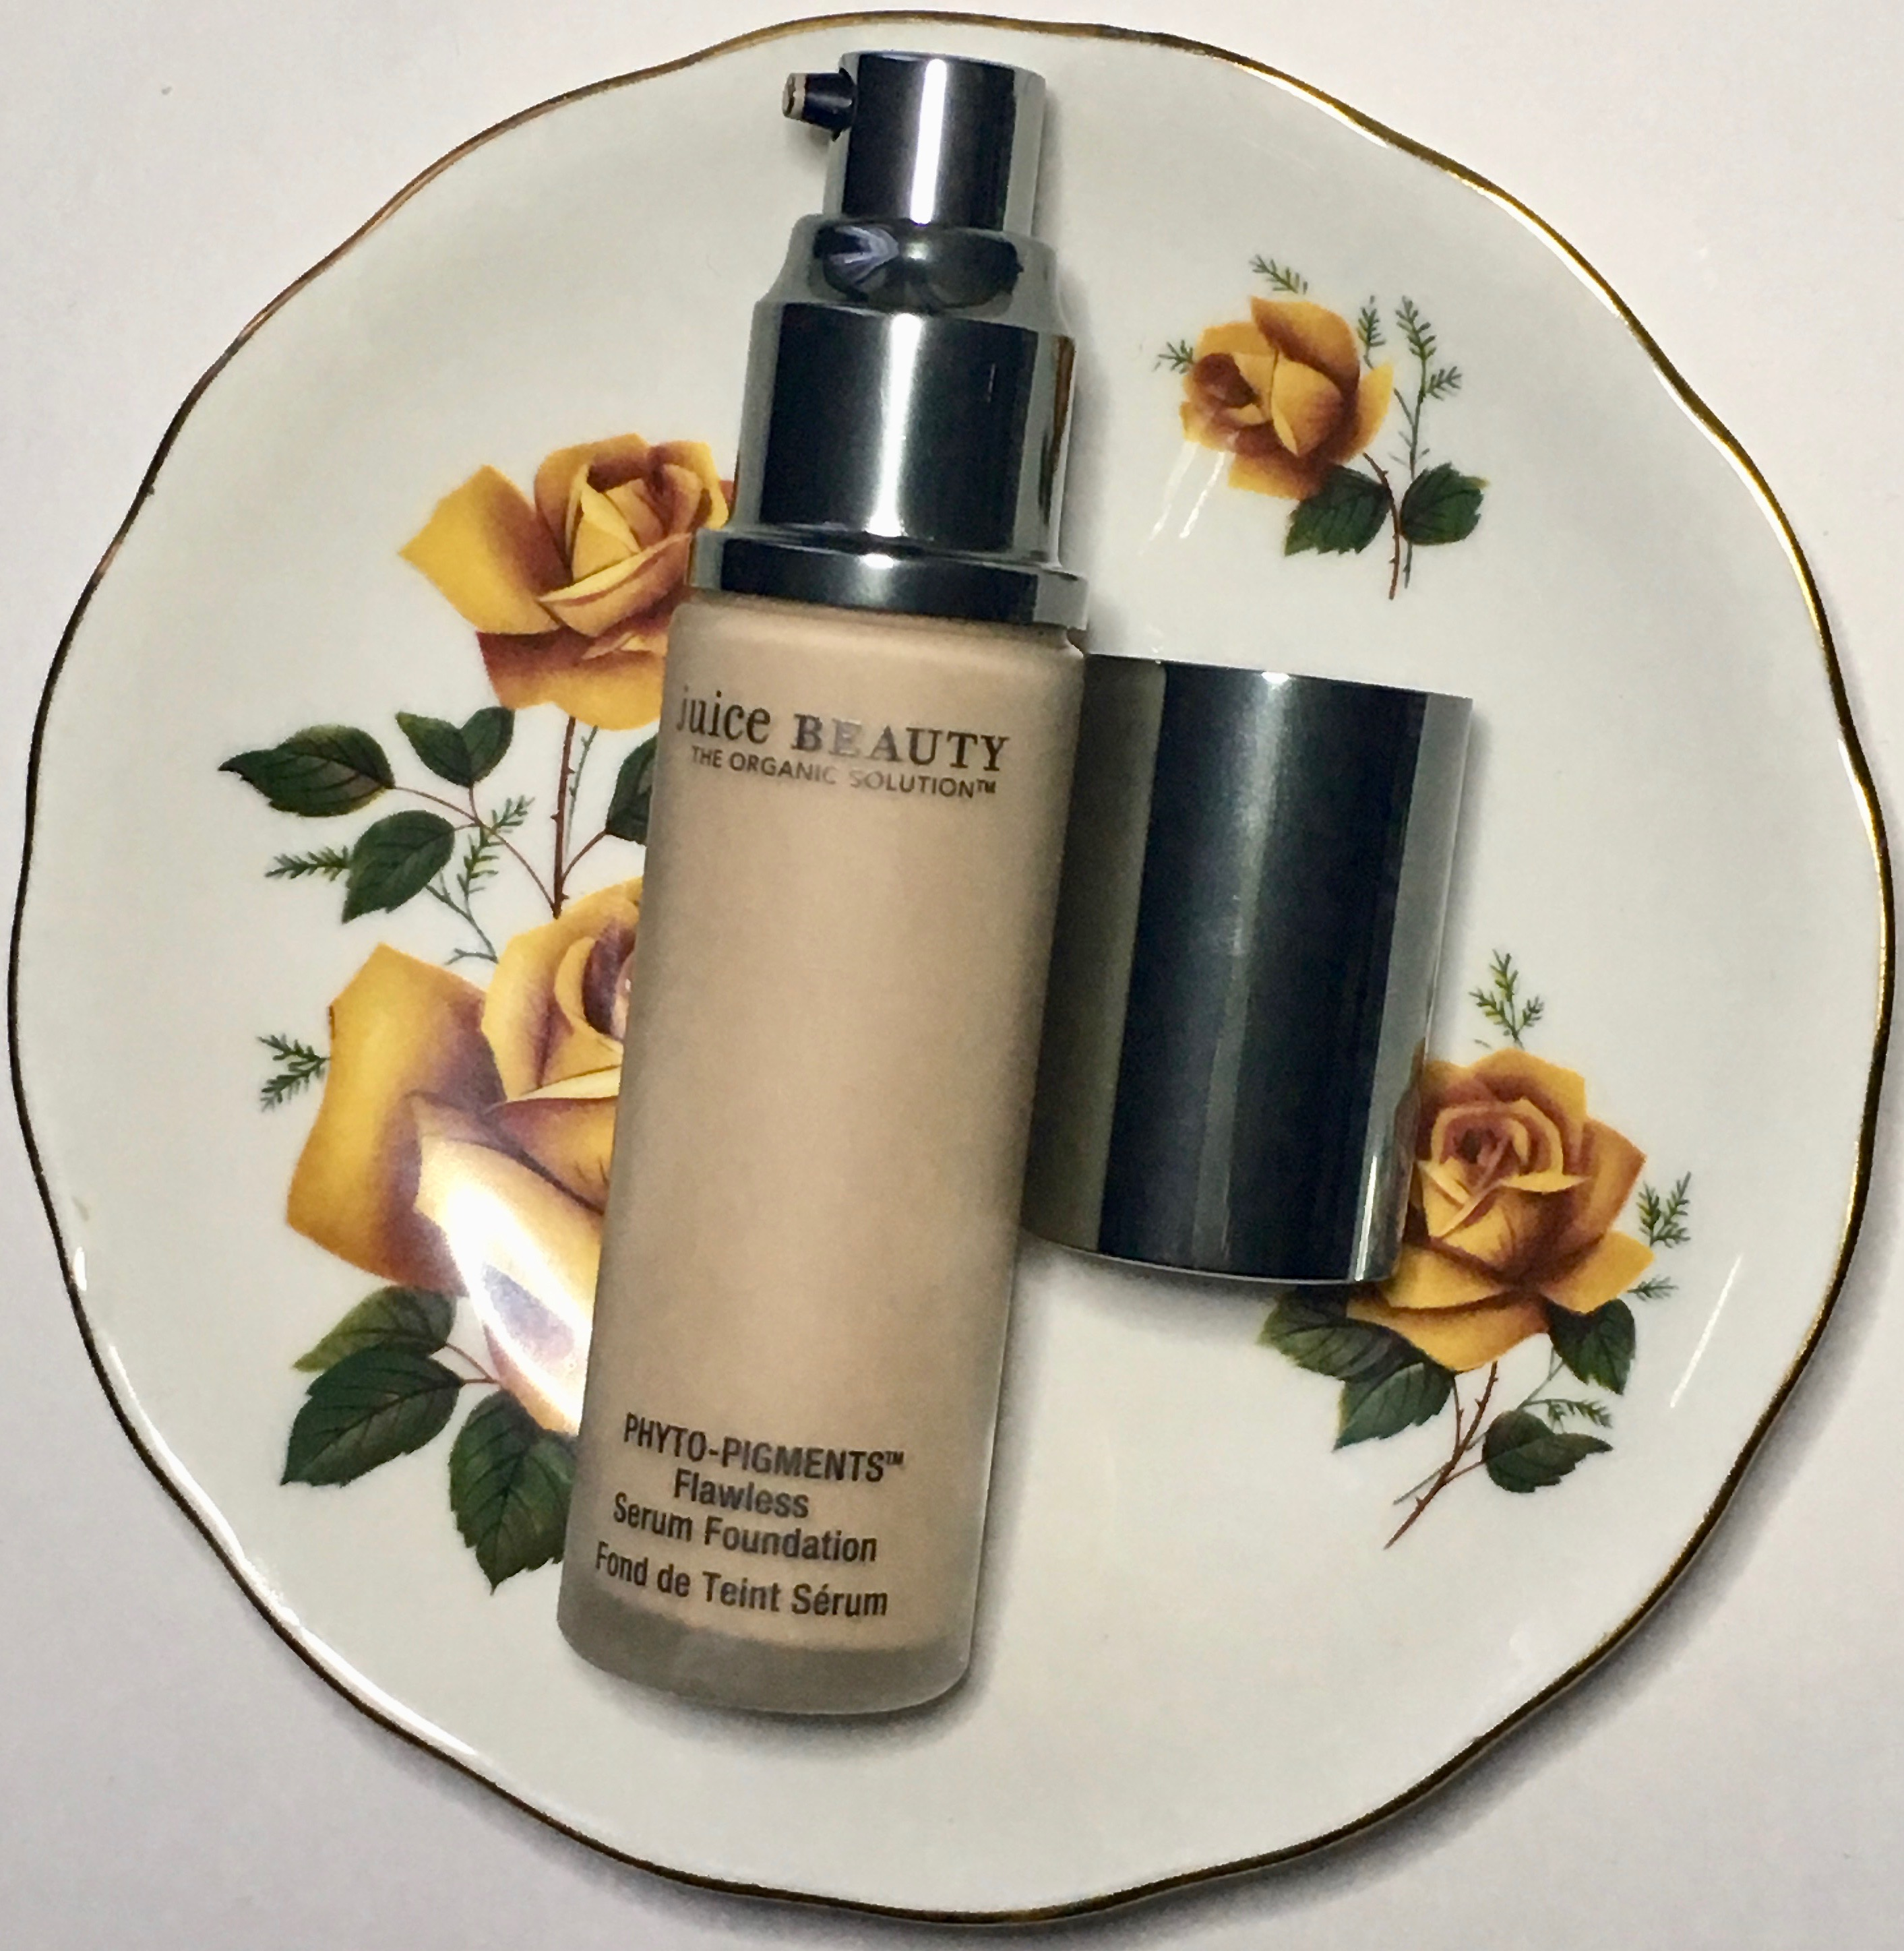 Juice Beauty Serum Foundation in Rosy Beige